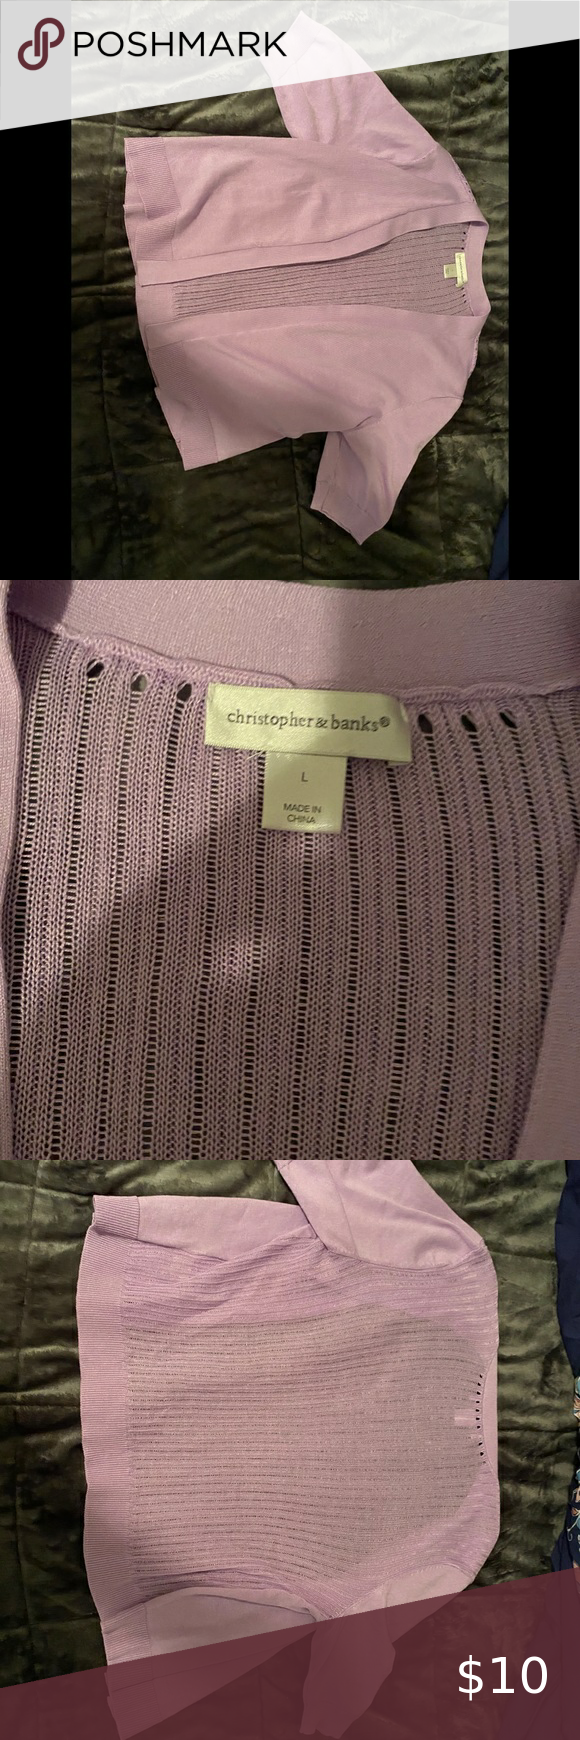 Christopher & banks cardigan Lilac colored cardigan. Perfect to go over a dress or tank top. Christopher & Banks Tops